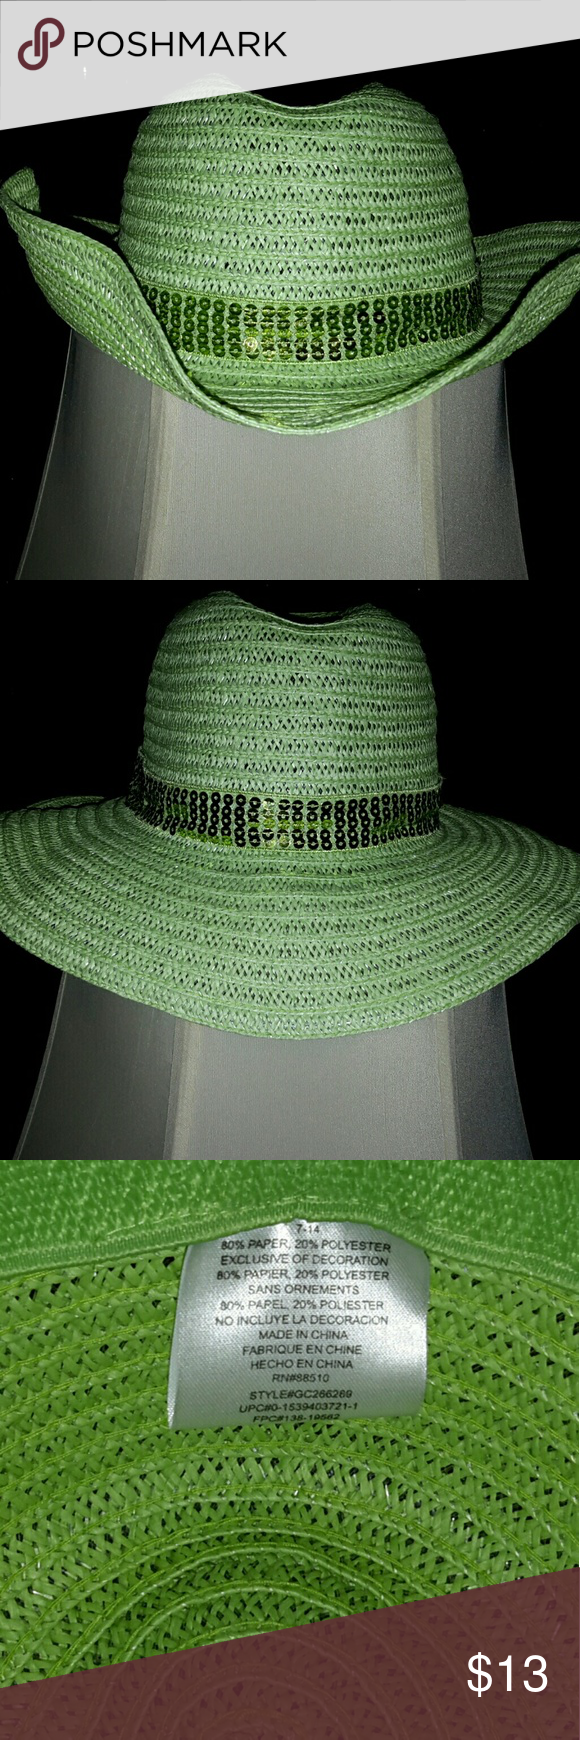 7d18a849780a0 Lime green Straw-Like Hat Great summer hat with sequin band for the beach  or shopping. Wear with the brim up or the brim down. Wear with sequined  sash or ...